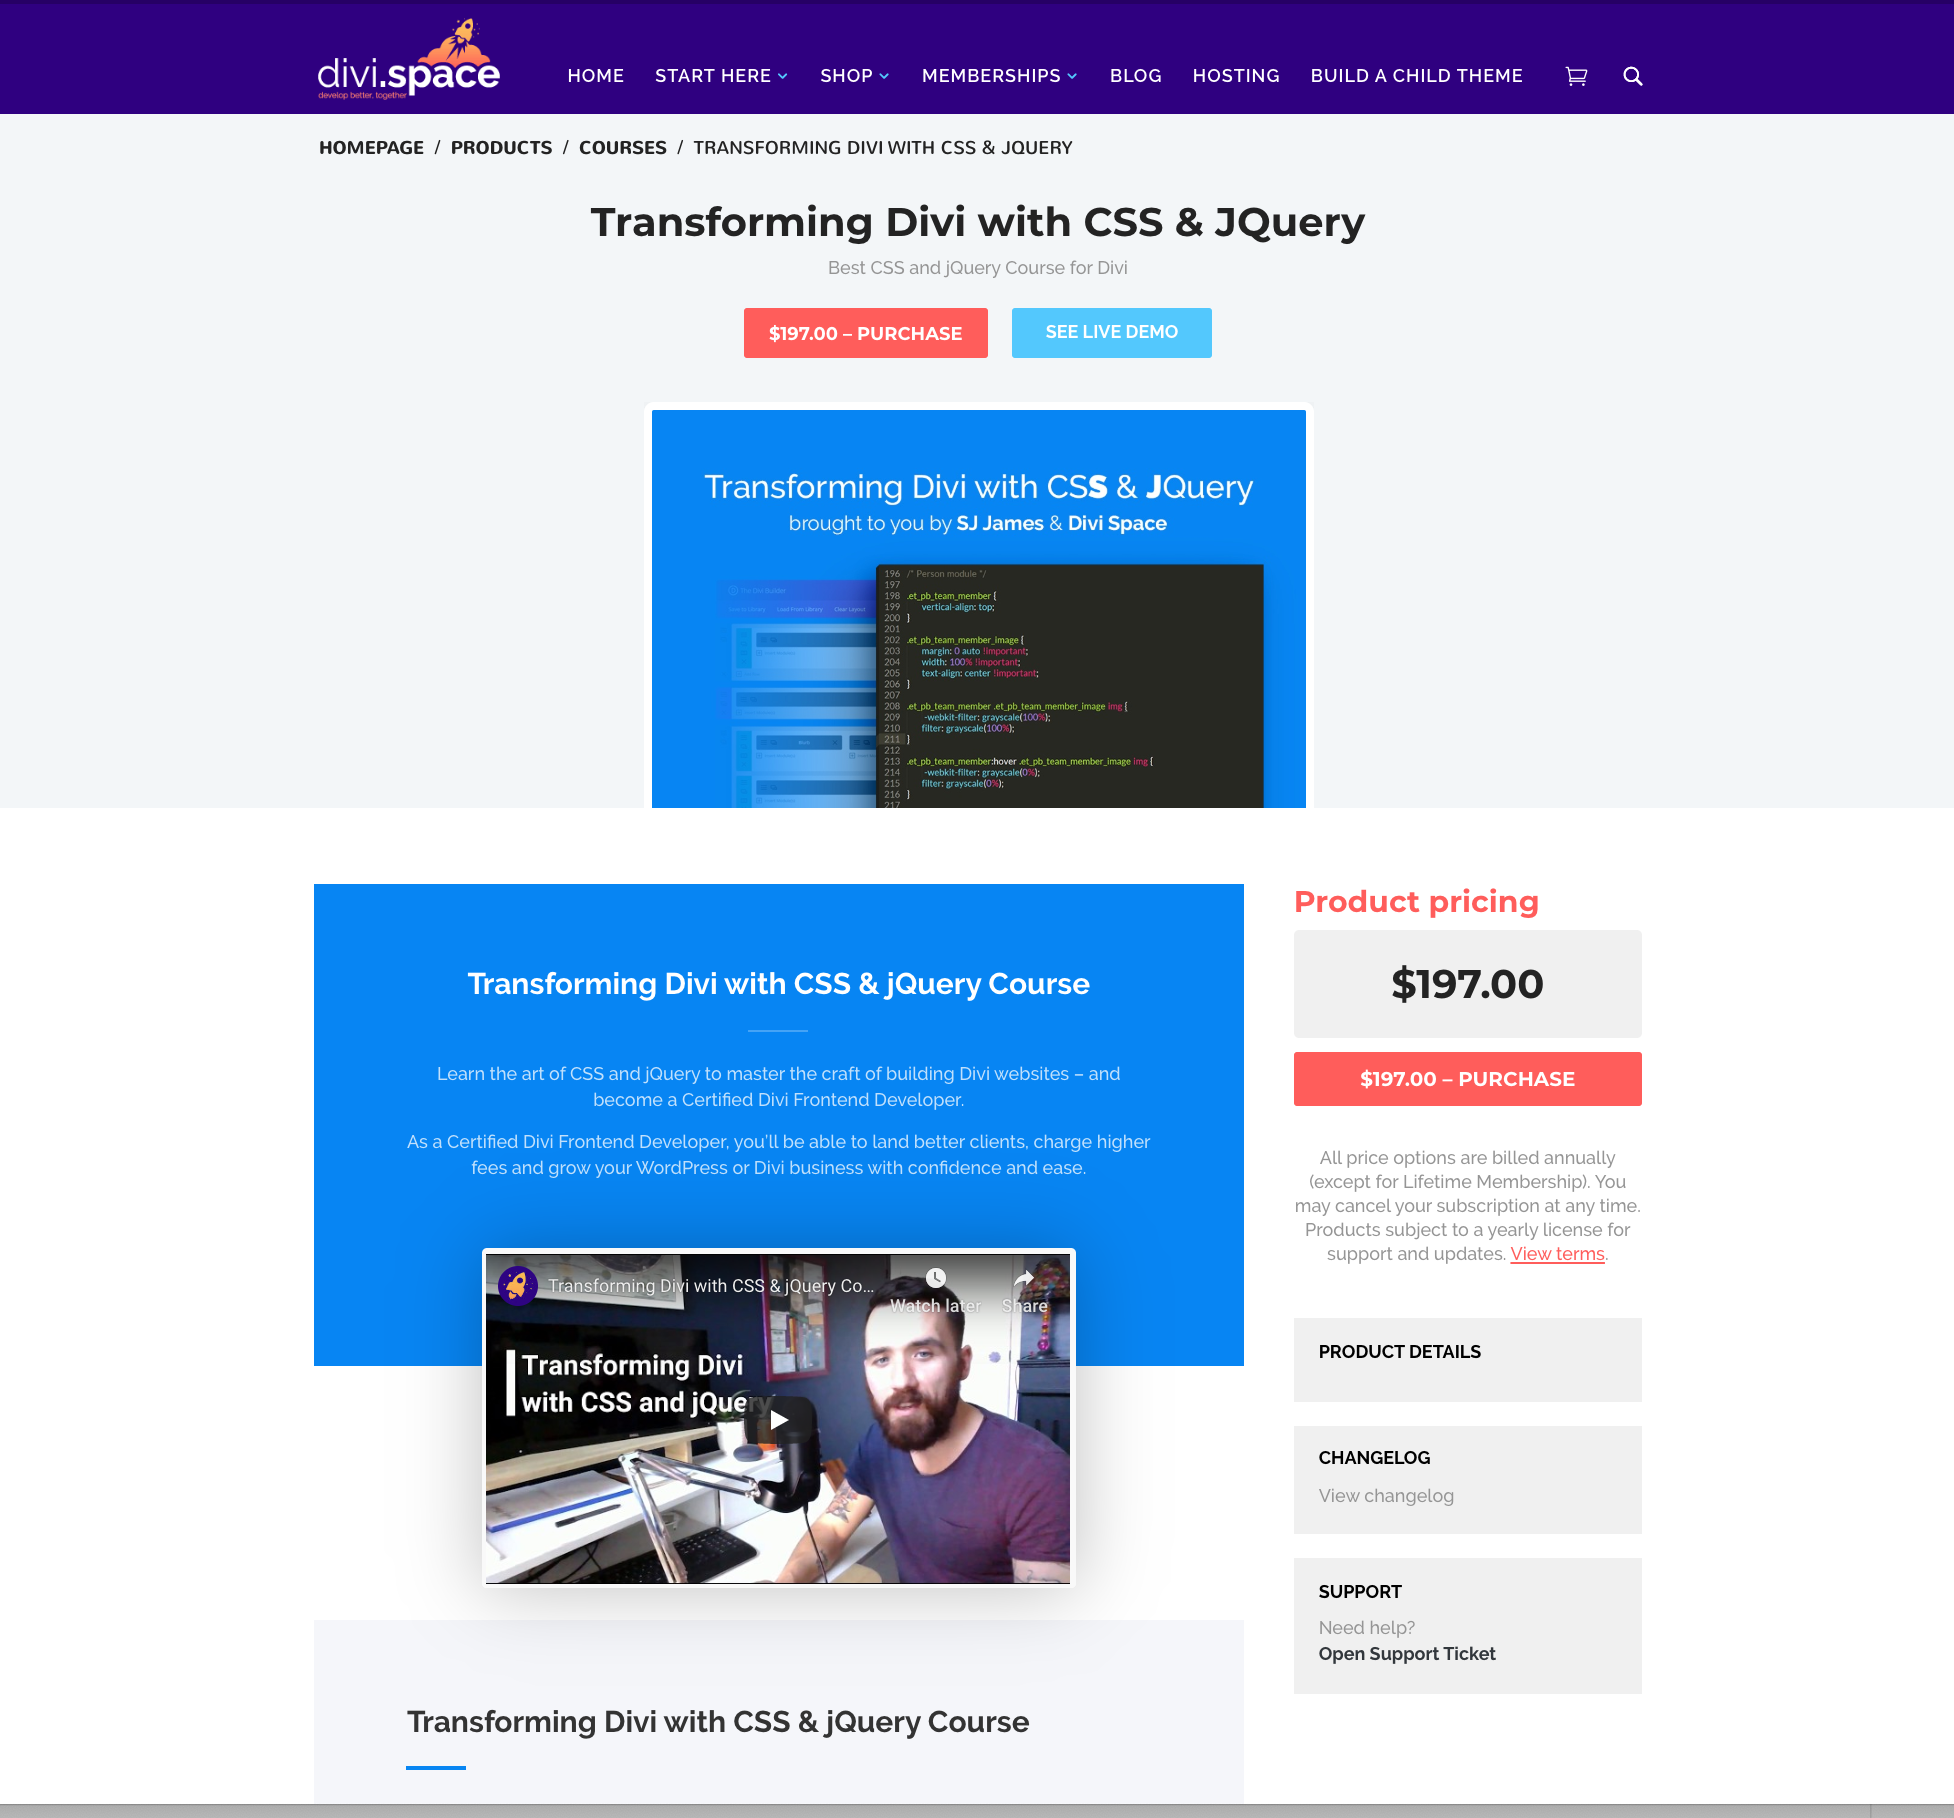 Transforming_Divi_with_CSS___JQuery___Divi_Space_and_Slack___sales-lifterlms-feed___codebox___2_new_items